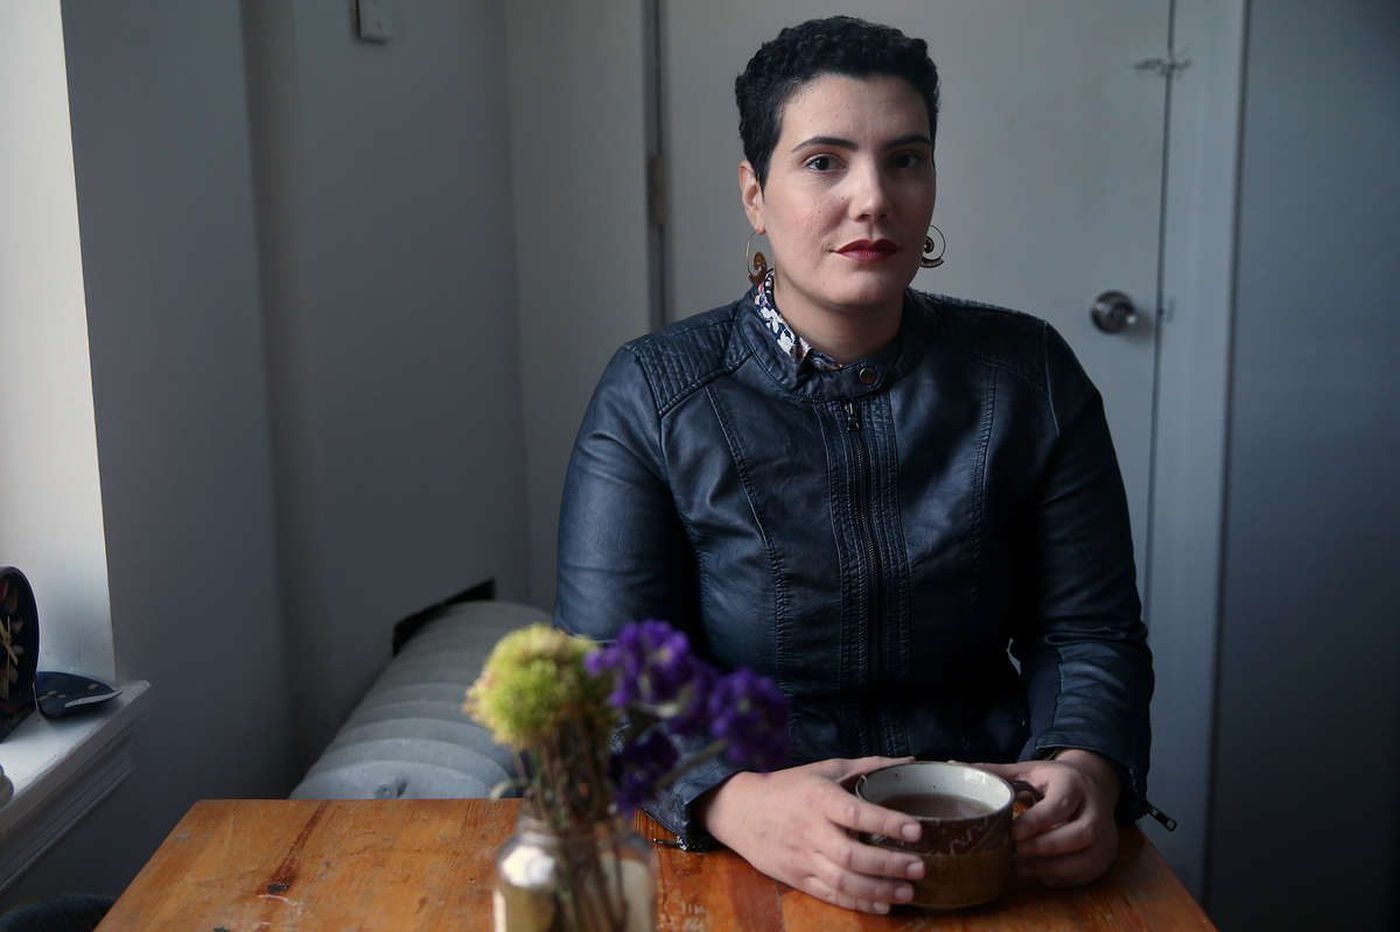 Meet Philadelphia's new poet laureate, Raquel Salas Rivera: Poet, migrant, bridge-builder